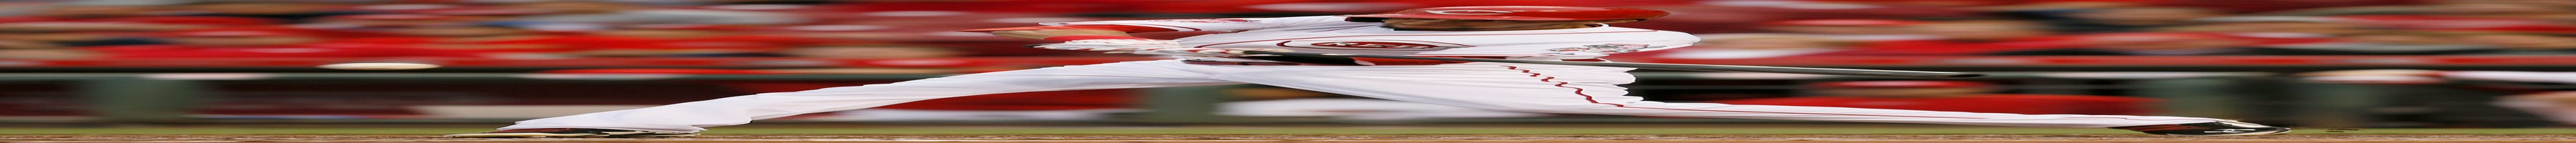 Marlon Byrd's homer helps Reds past Giants, 4-3